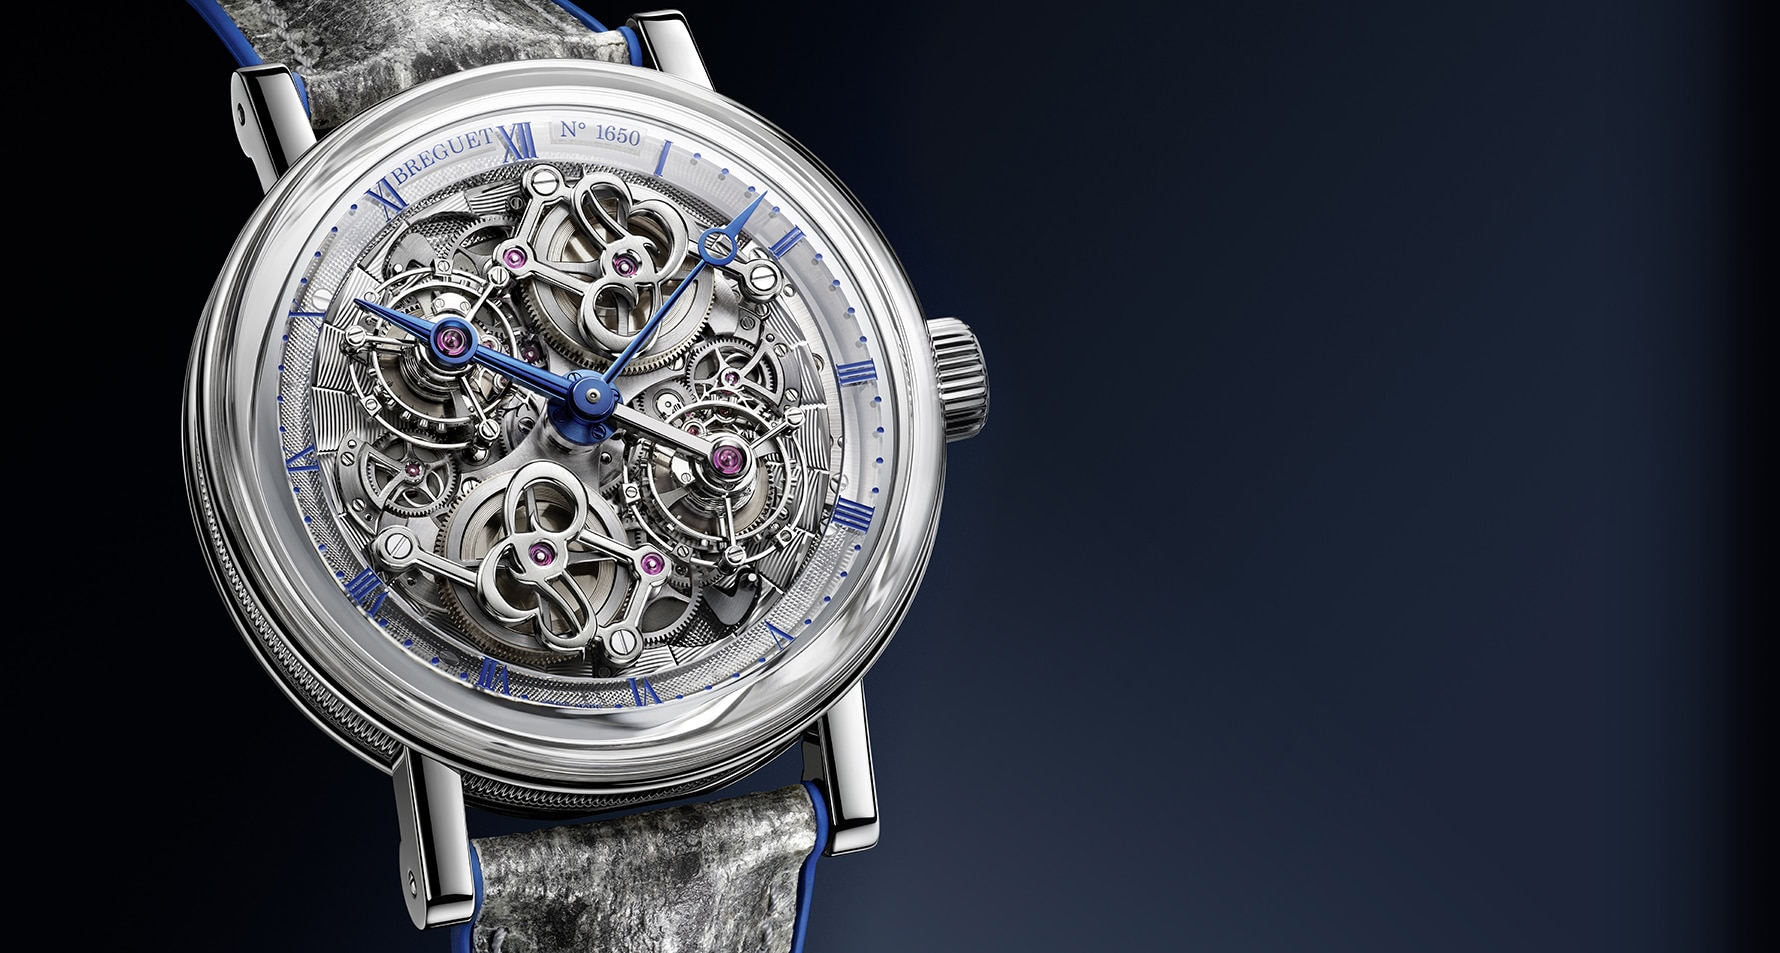 Mechanical virtuosity with aesthetic mastery: Breguet presents its new Double Tourbillon